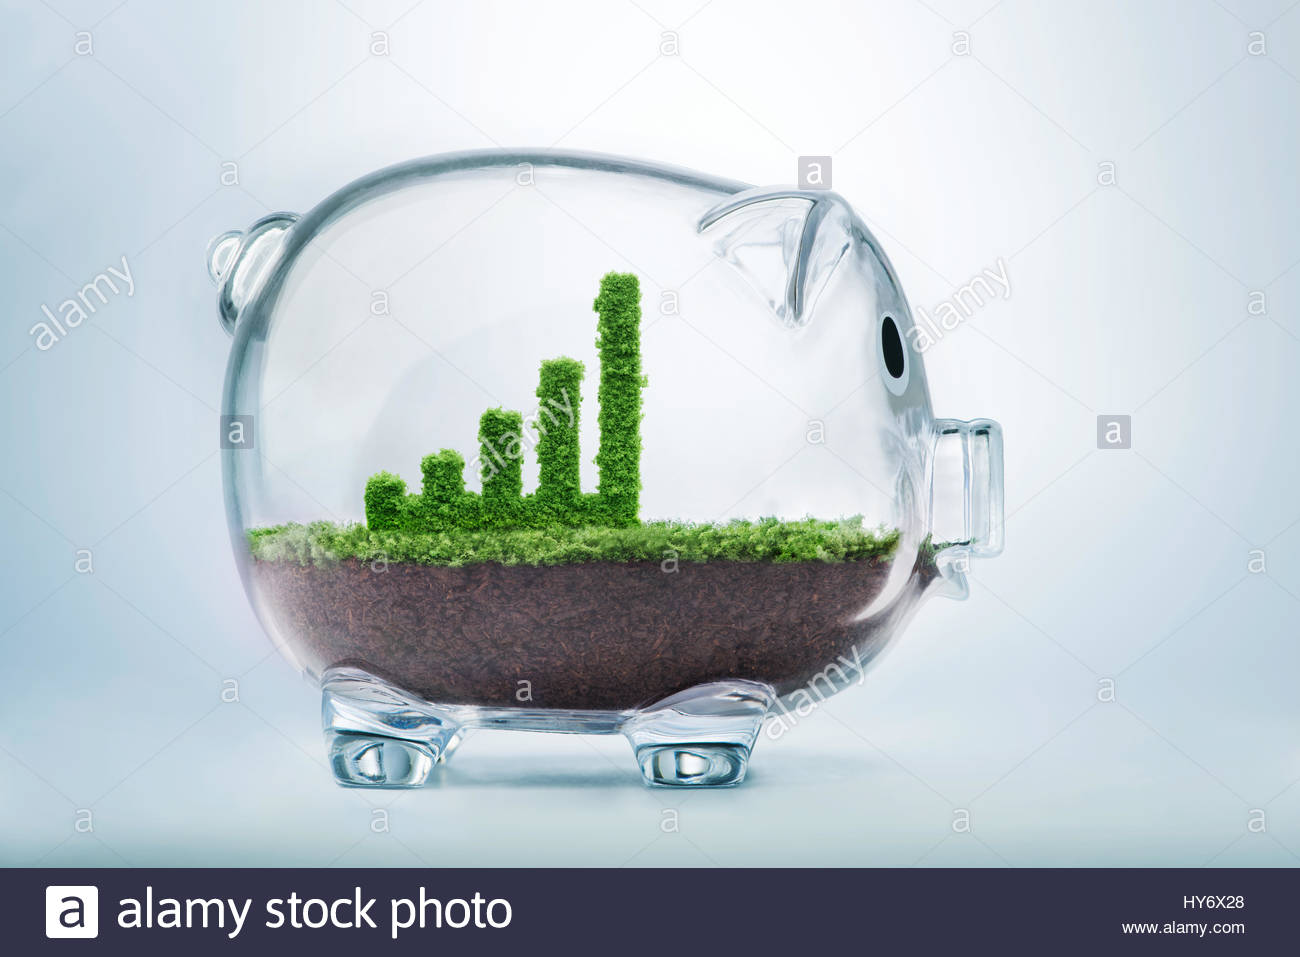 Business growth concept with grass growing in shape of graphic bar inside transparent piggy bank - Stock Image